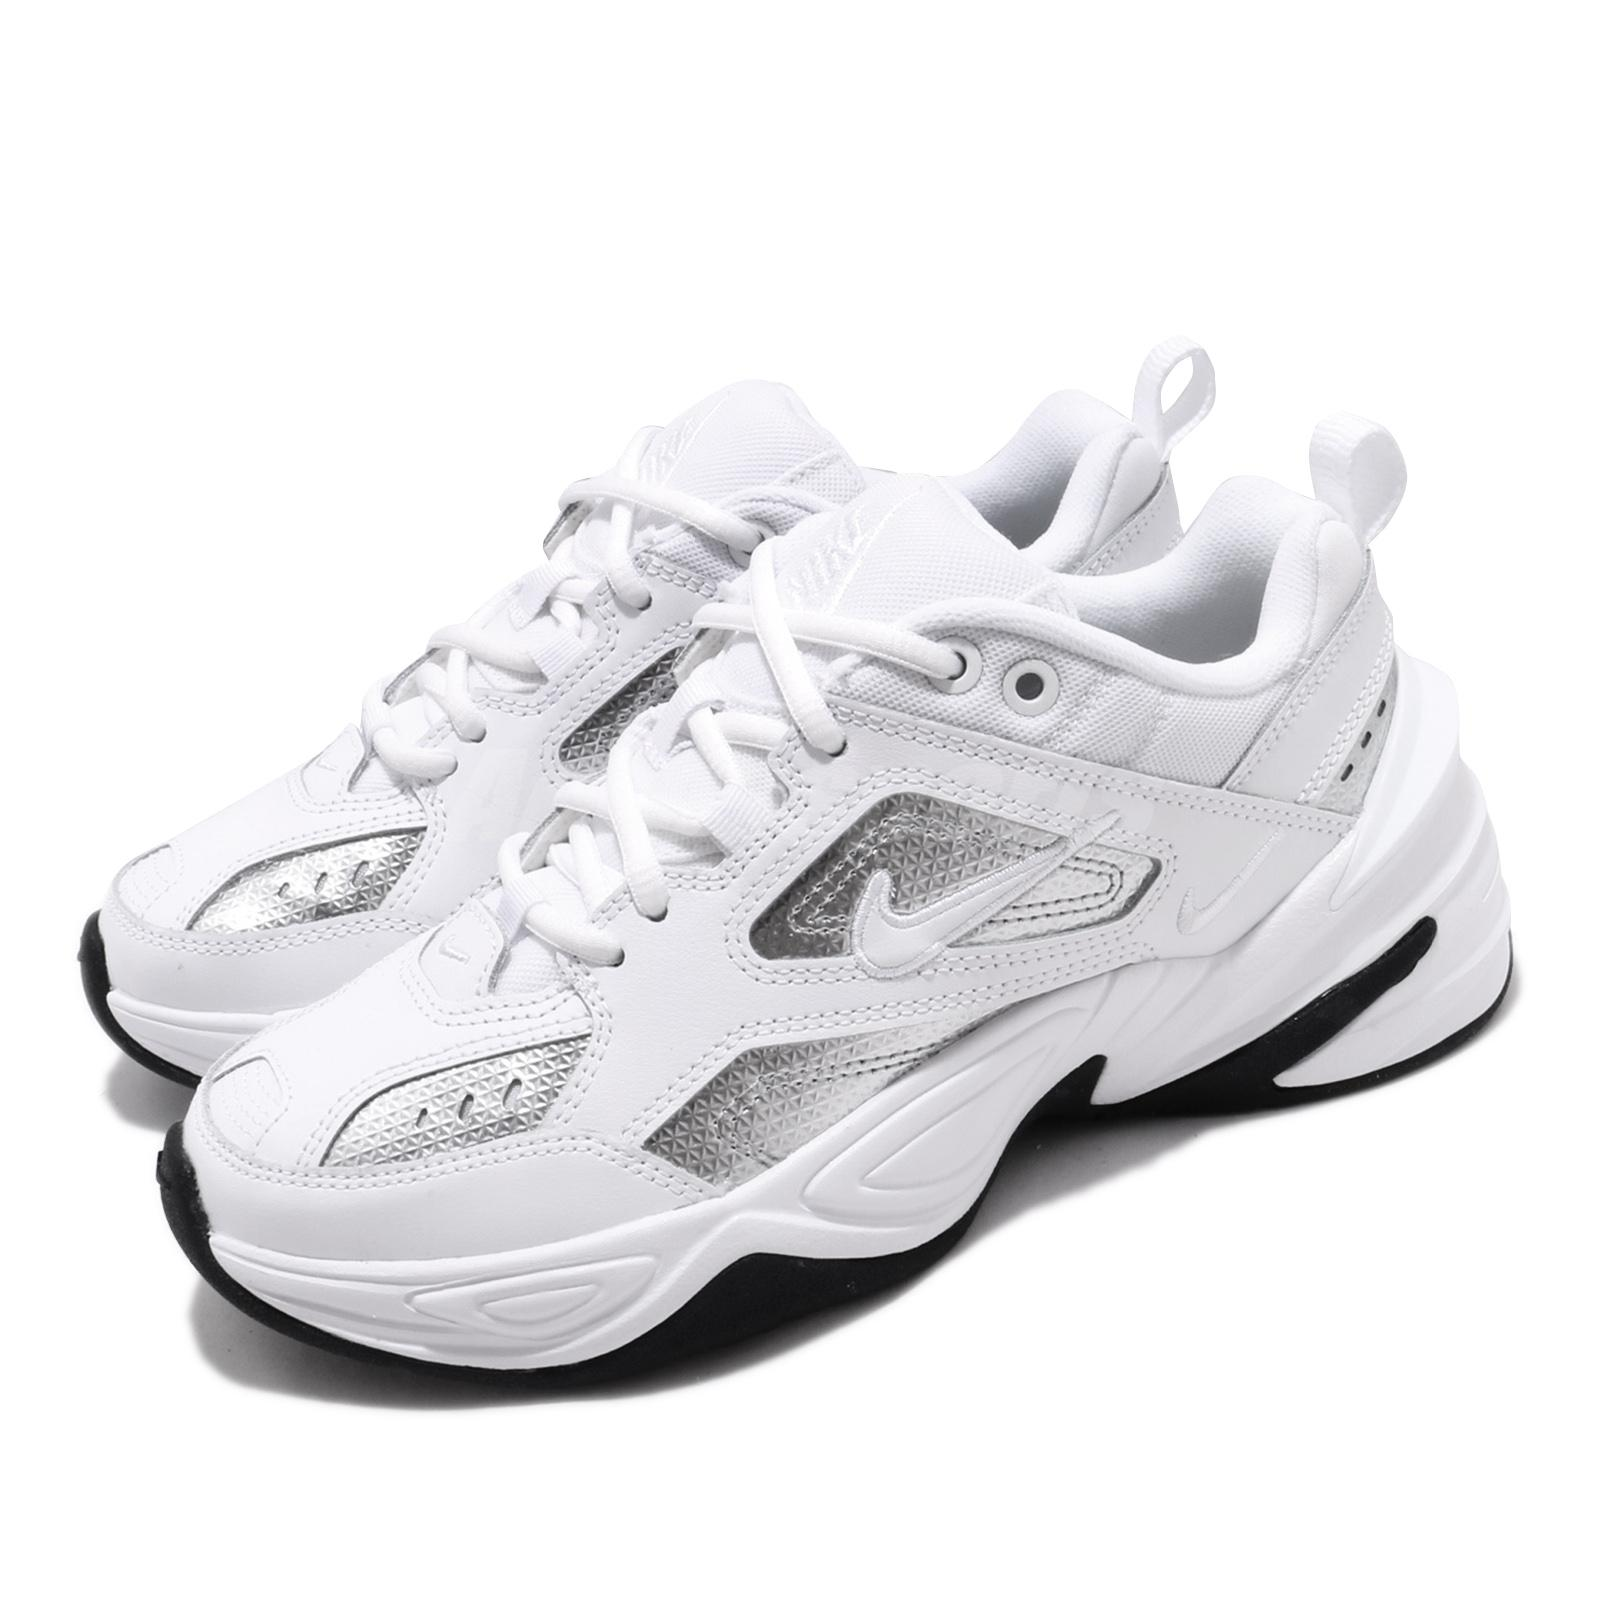 Details about Nike Wmns M2K Tekno ESS Essential White Silver Womens Running  Shoes CJ9583-100